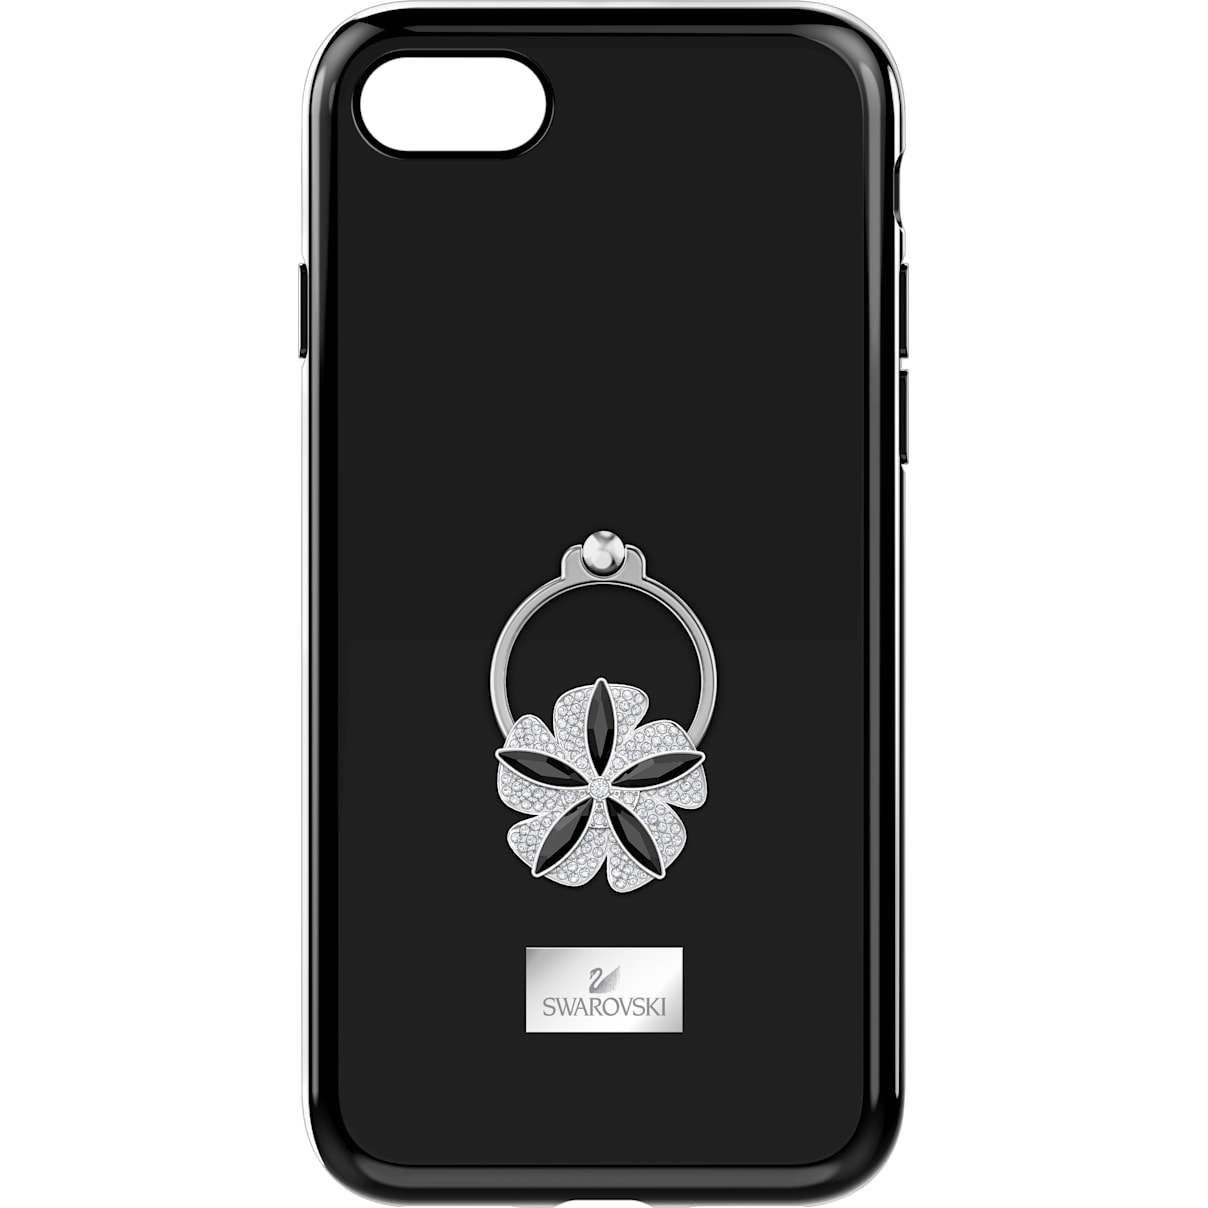 Swarovski Mazy ring Smartphone Case with integrated Bumper, iPhone® 8, Black